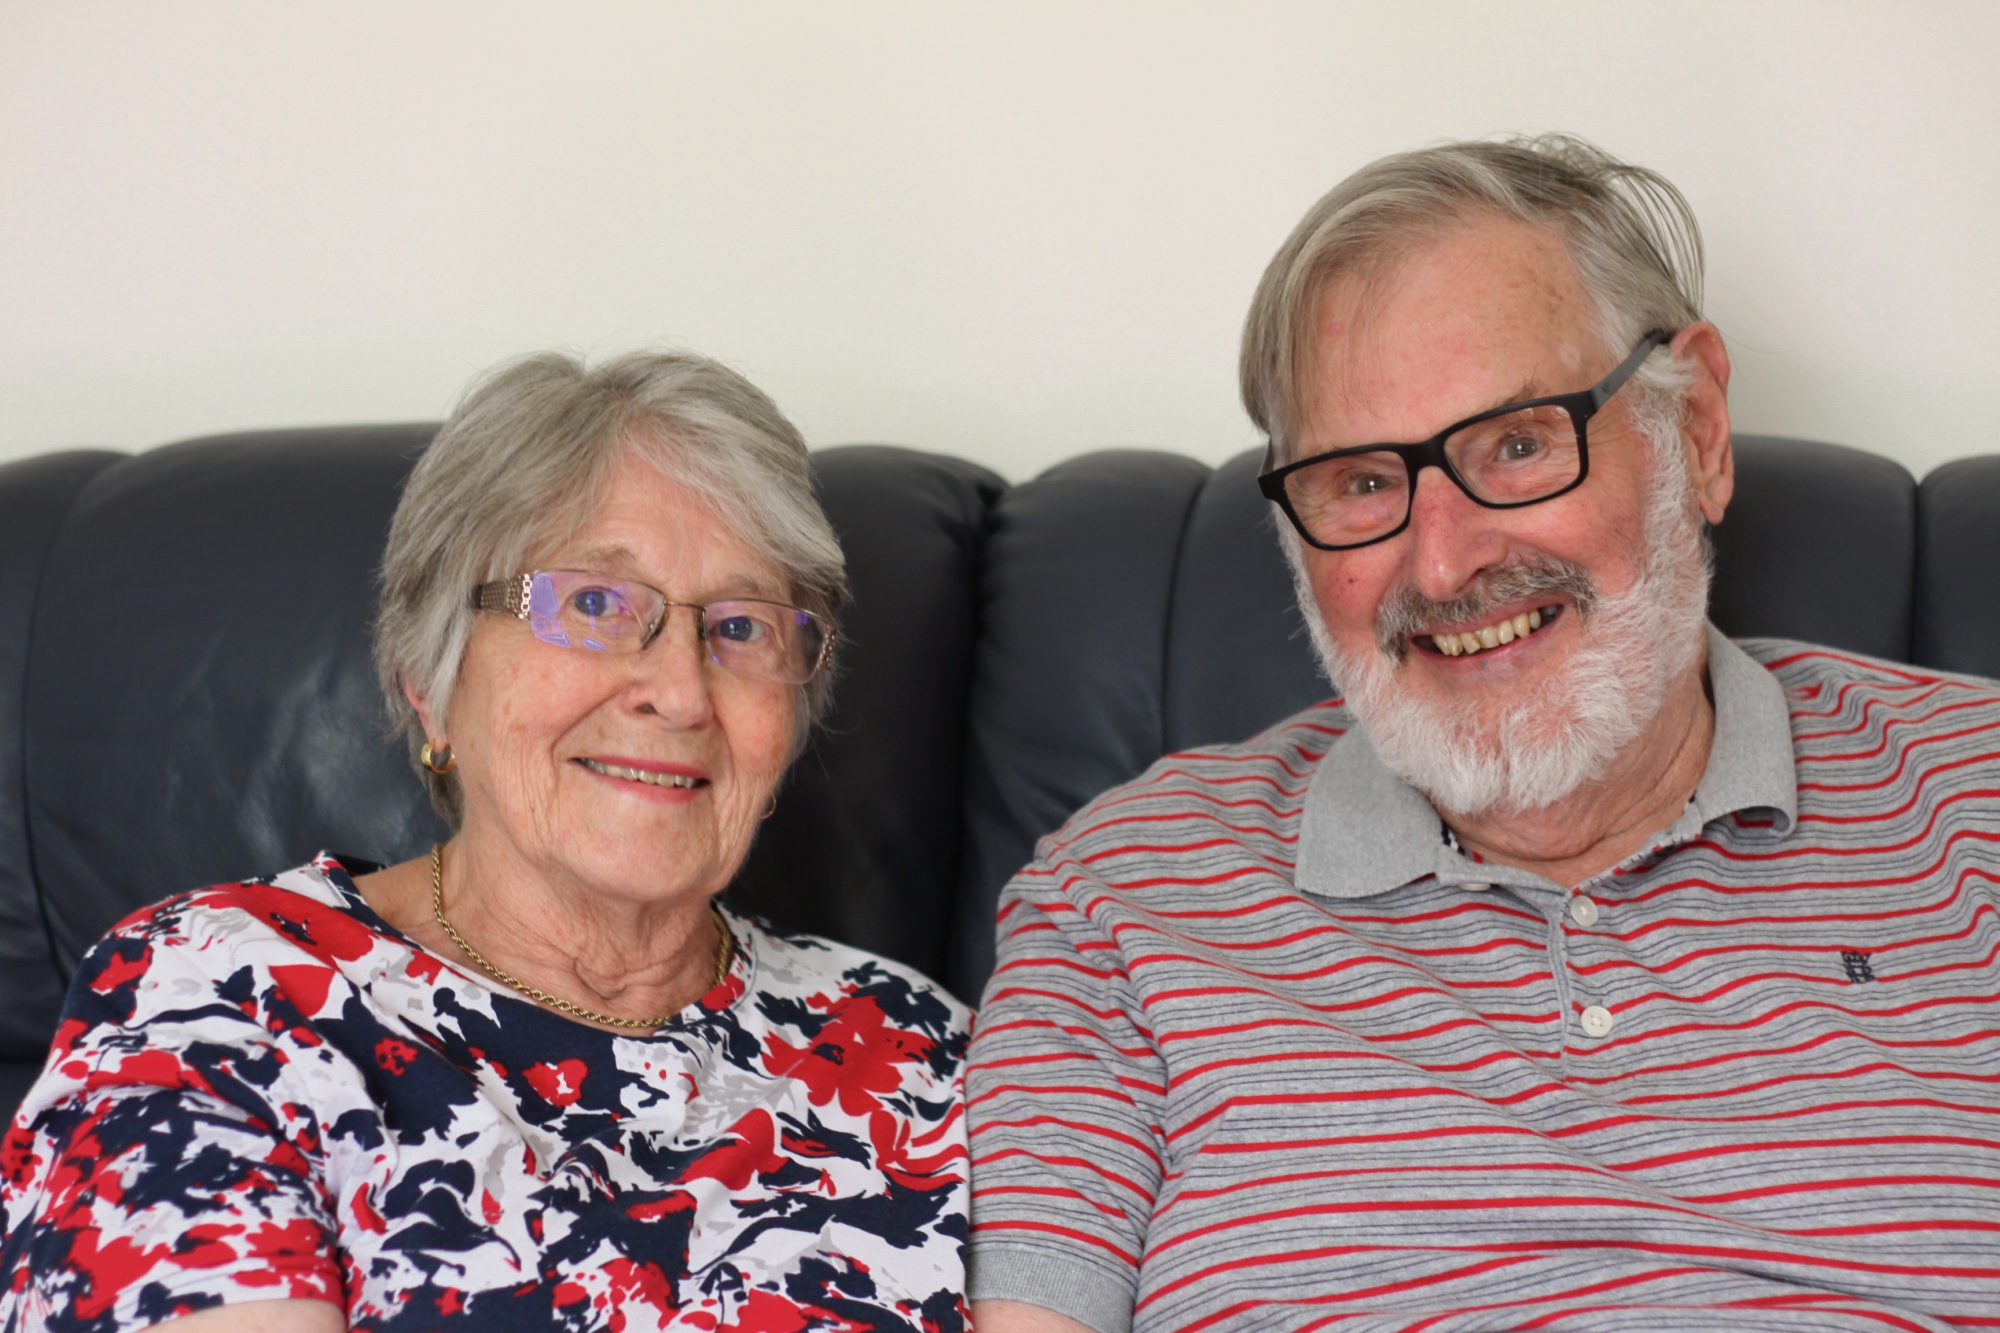 Betty and Brian have been married for 60 years.